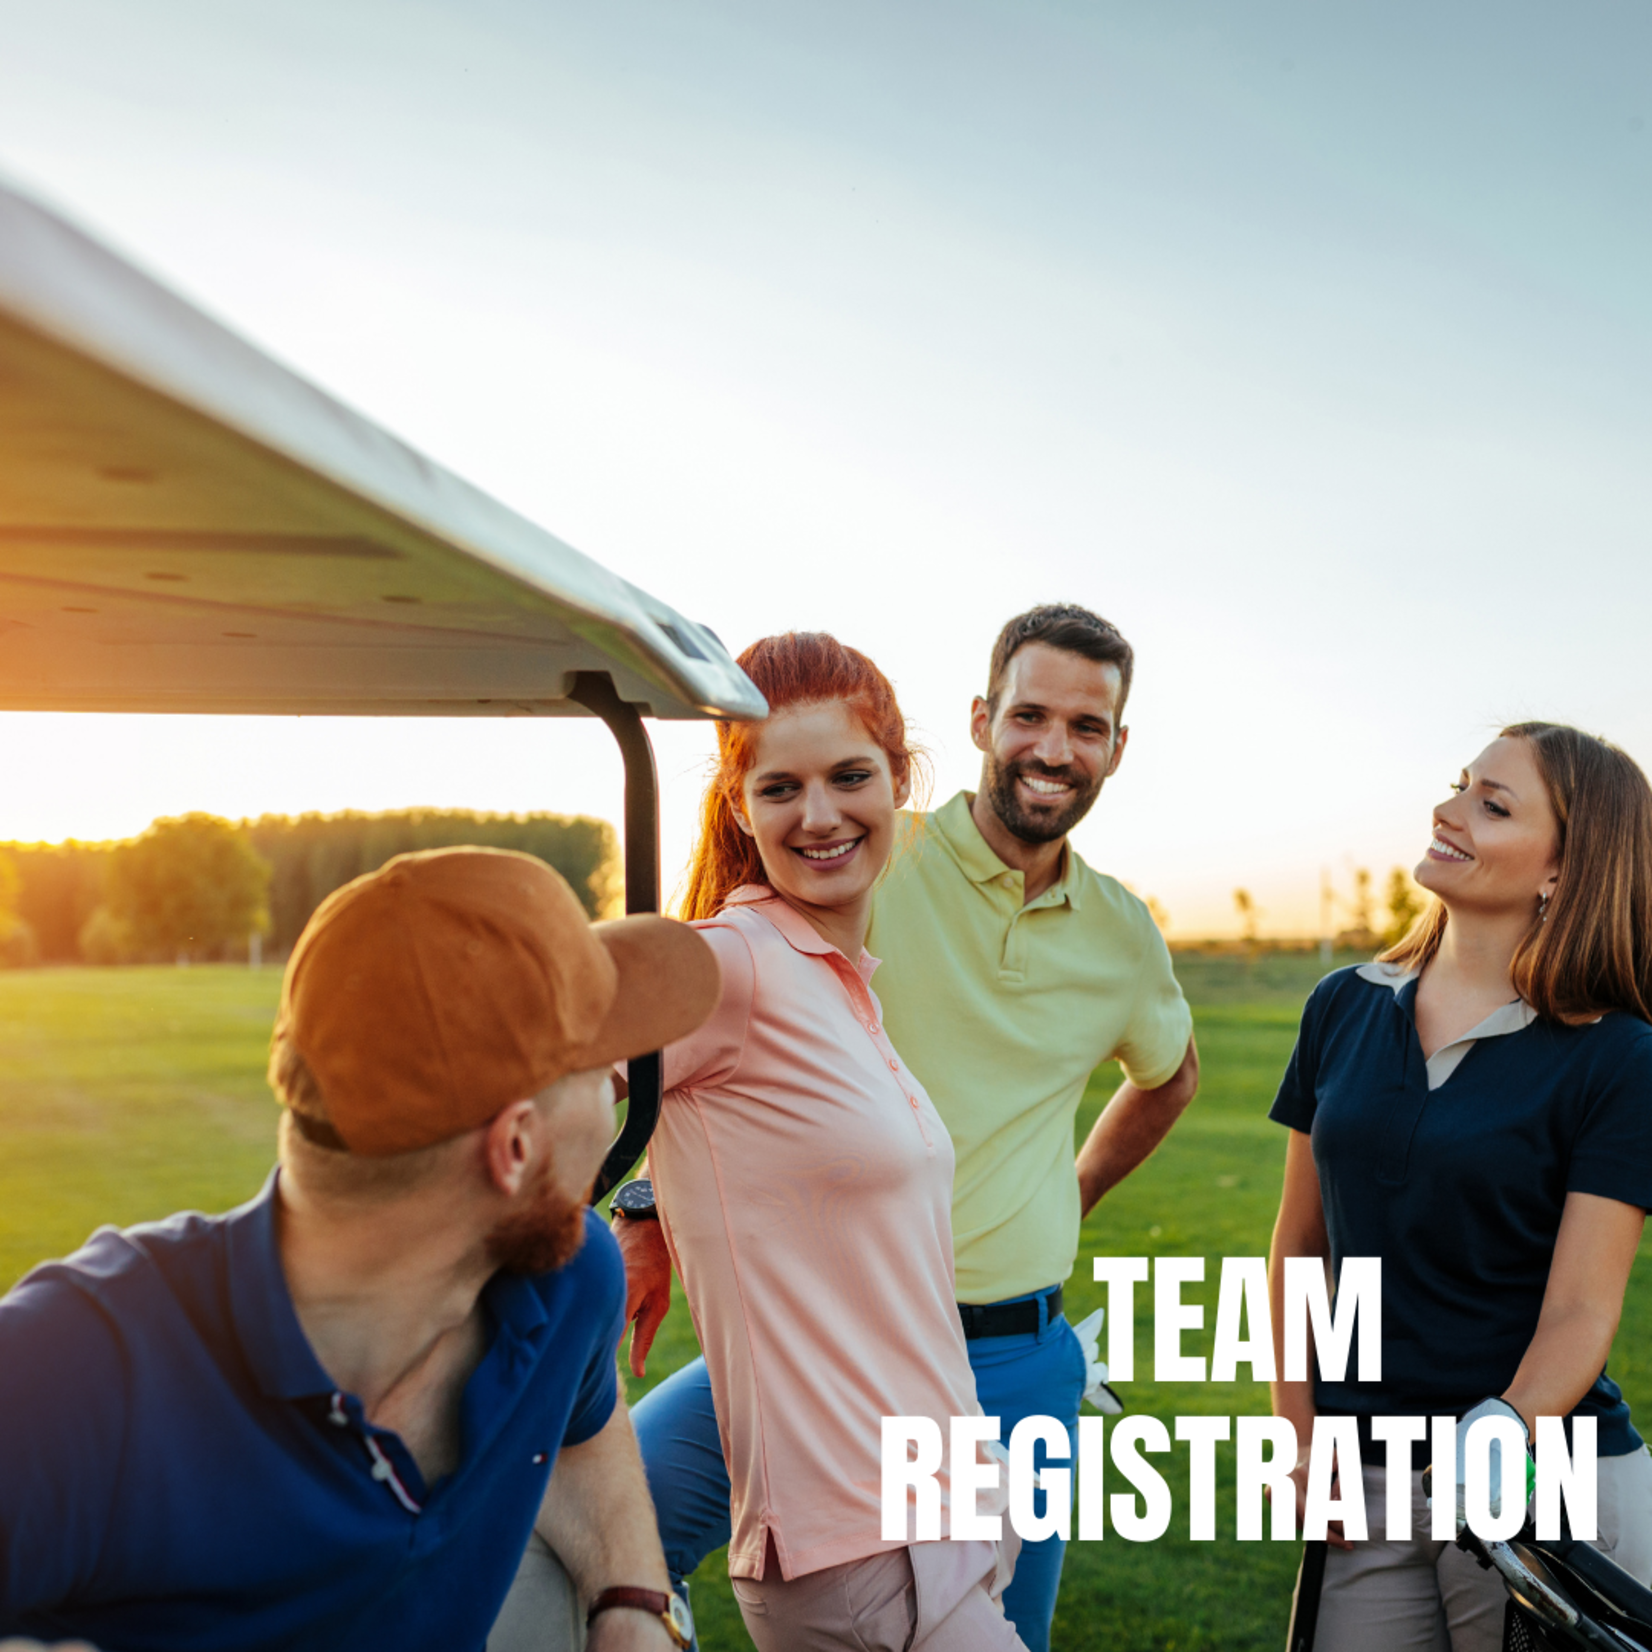 Skaters North The Station and Skaters North Golf Tournament-Team Registration